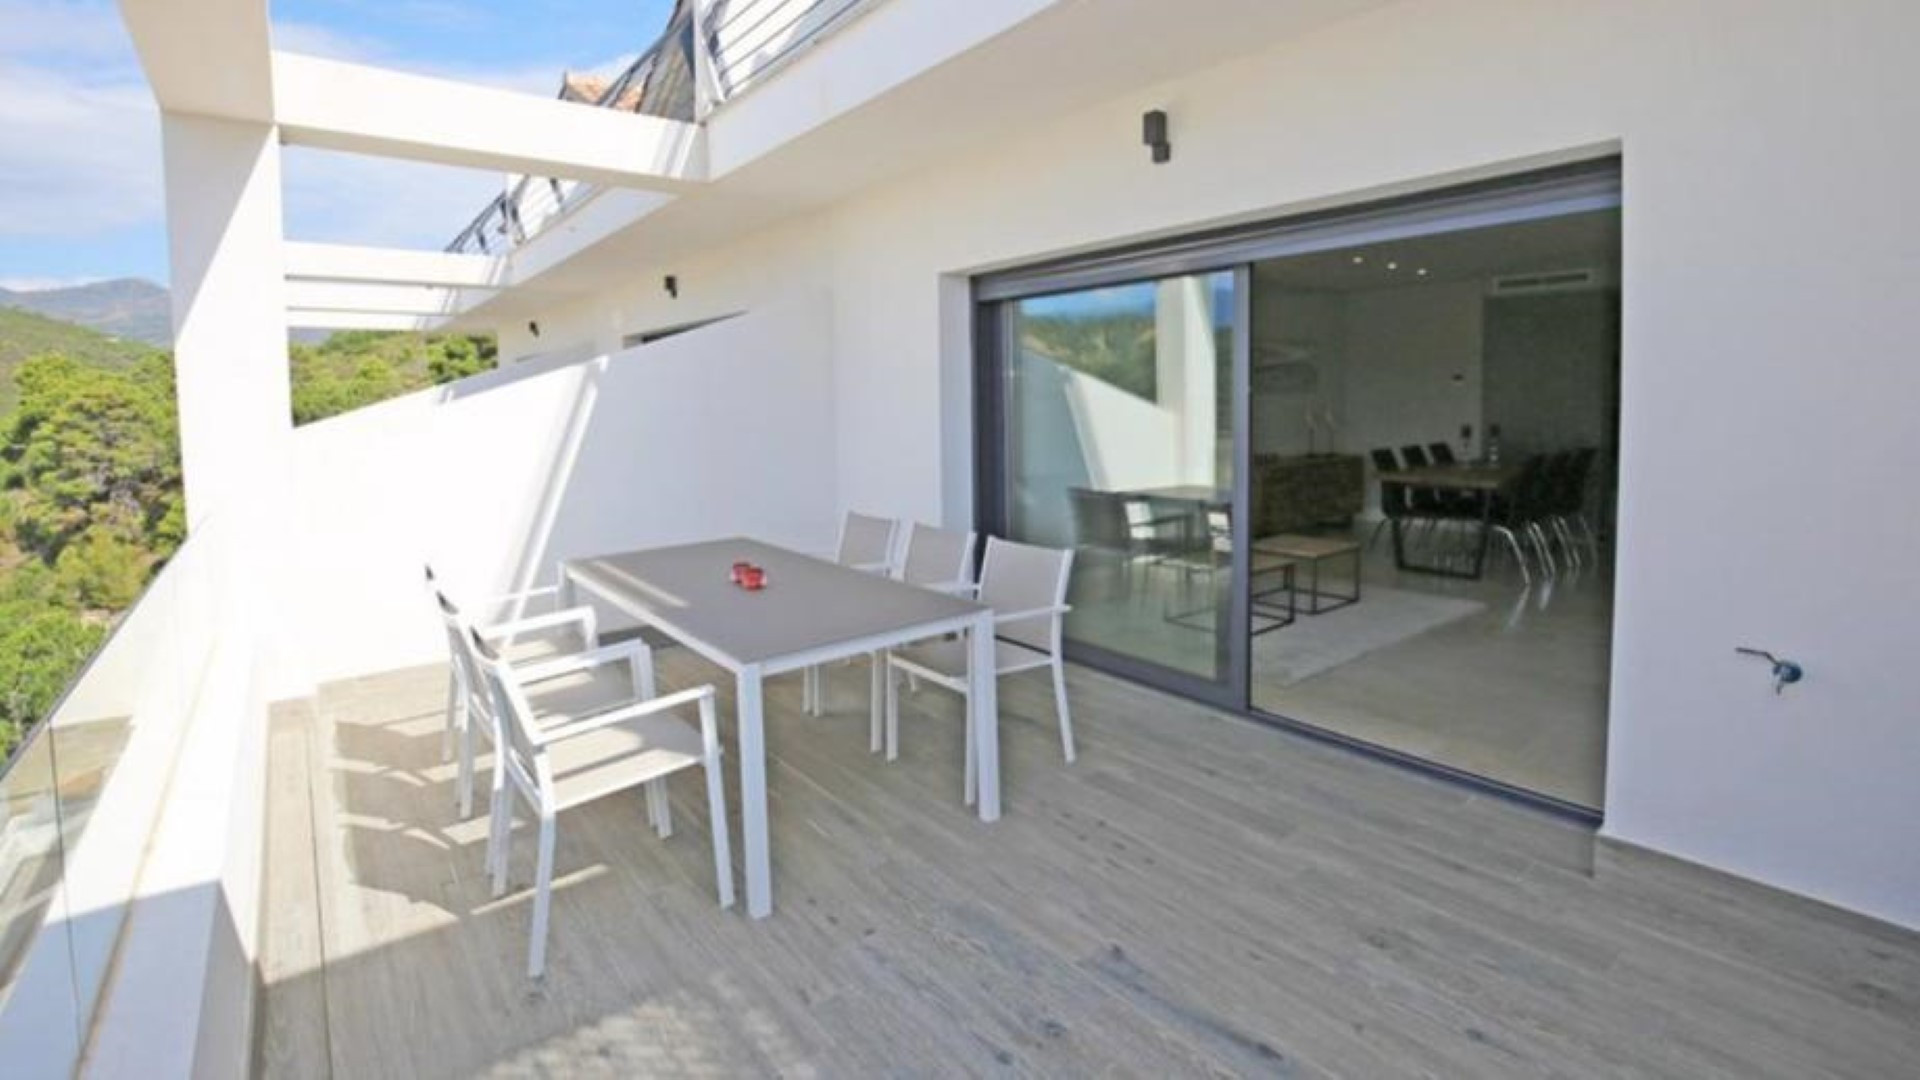 Nice duplex penthouse with panoramic views and fully furnished in Estepona